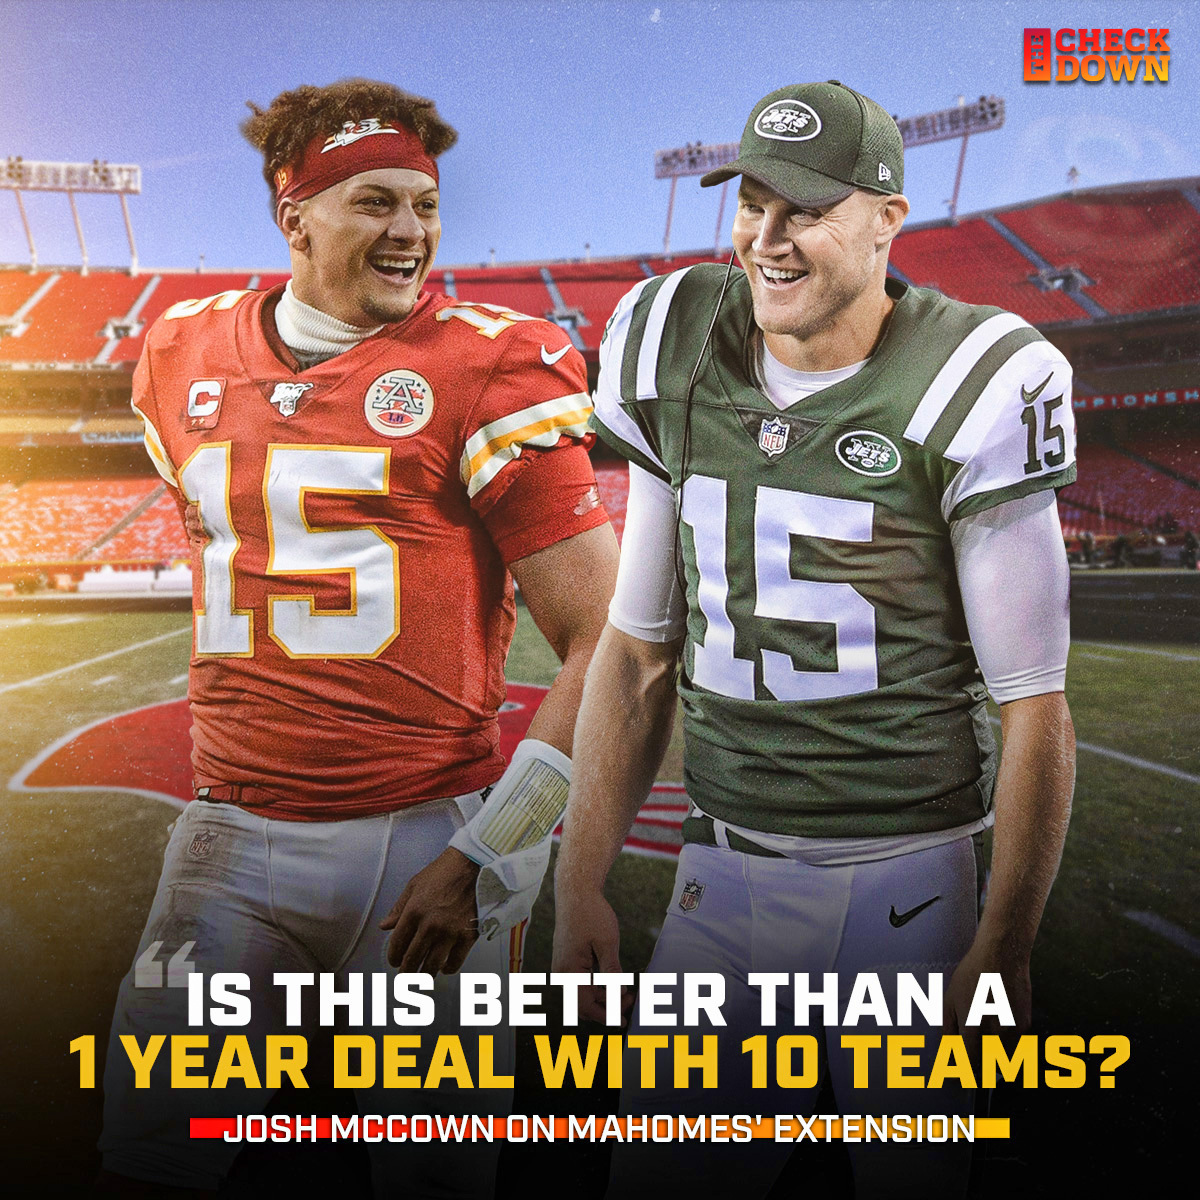 McCown has one question about Mahomes' contract 😂😂 @JoshMcCown @PatrickMahomes @Chiefs https://t.co/DNAR1qn2ni